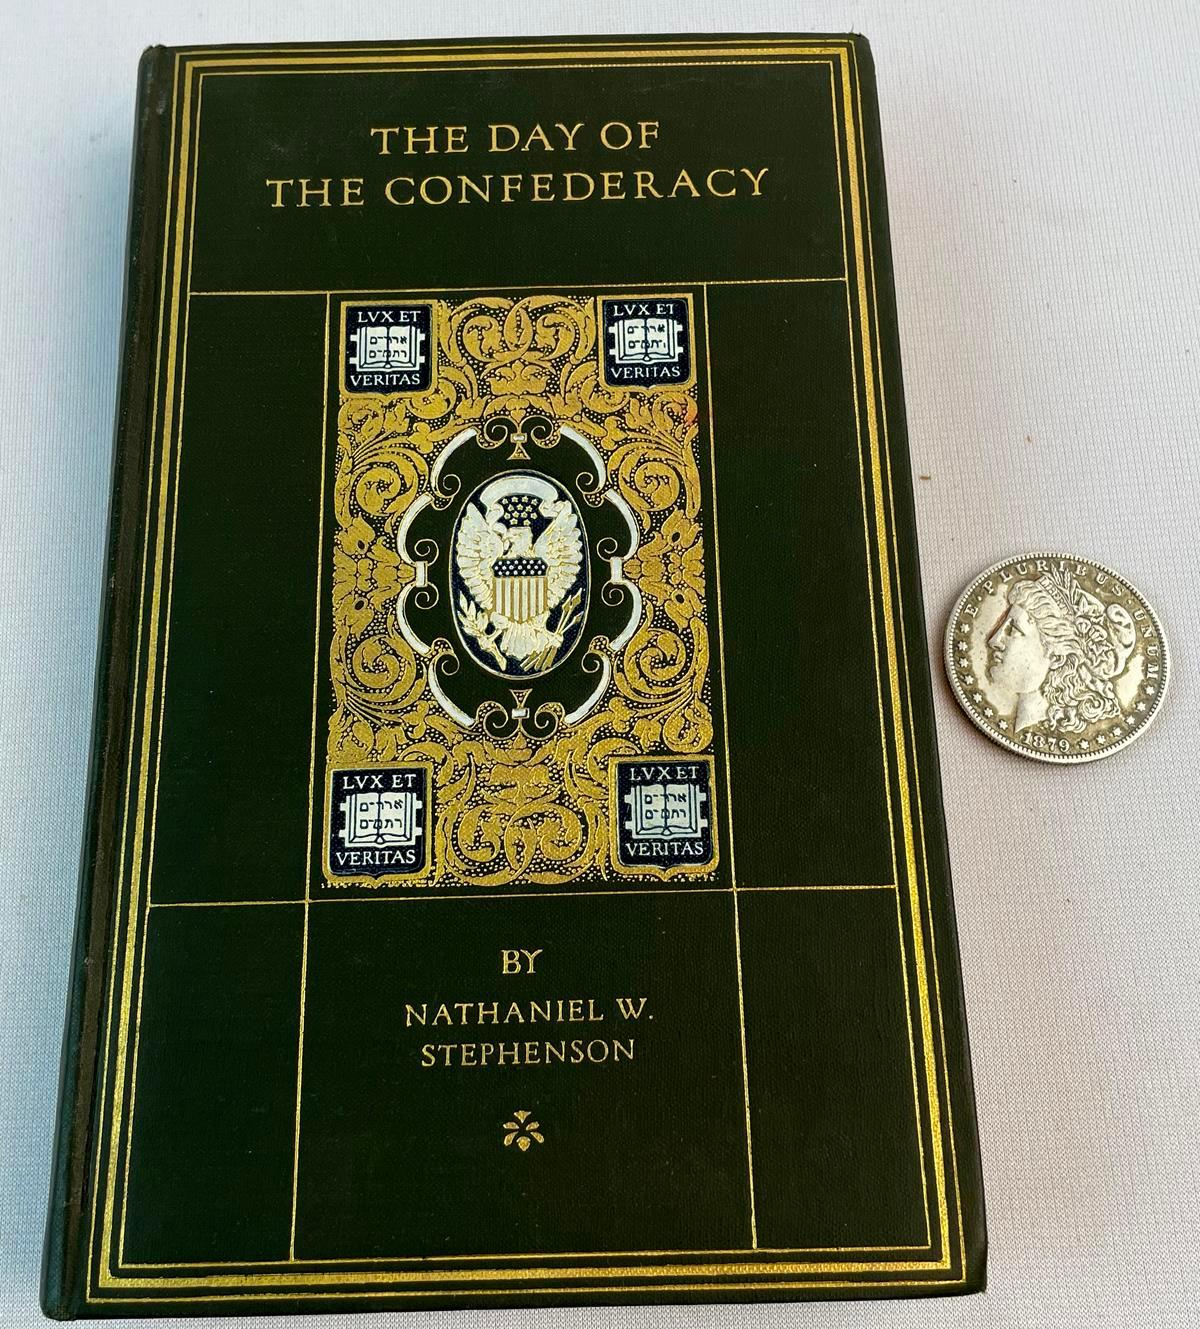 1920 The Day of the Confederacy: A chronical of the Embattled South Volume 30 by Nathaniel W. Stephenson ILLUSTRATED